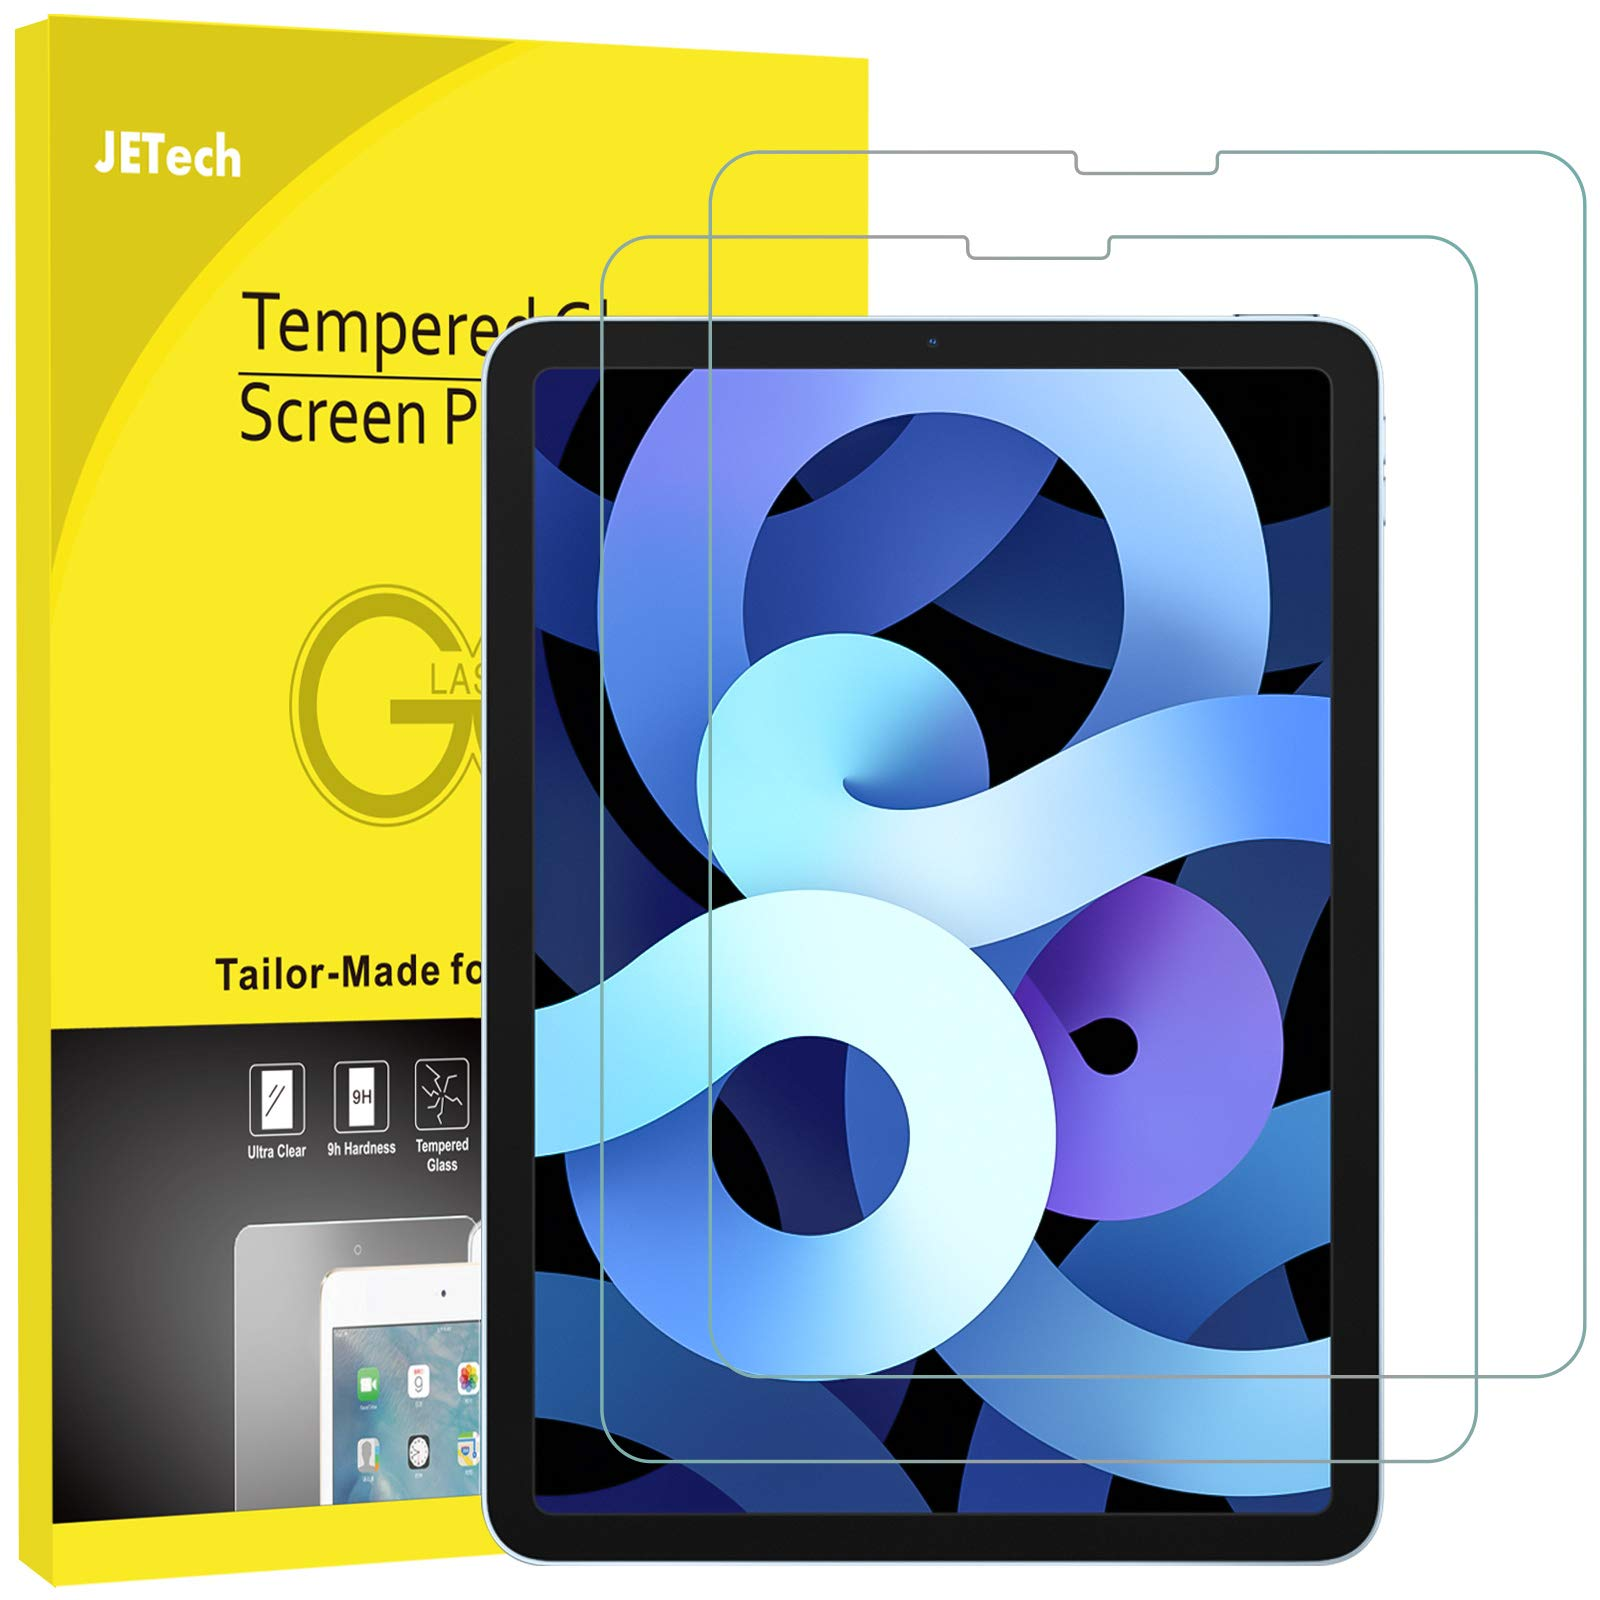 JETech 2-Pack Screen Protector for iPad Air 4 10.9-Inch, iPad Pro 11-Inch All Models, Face ID Compatible, Tempered Glass Film